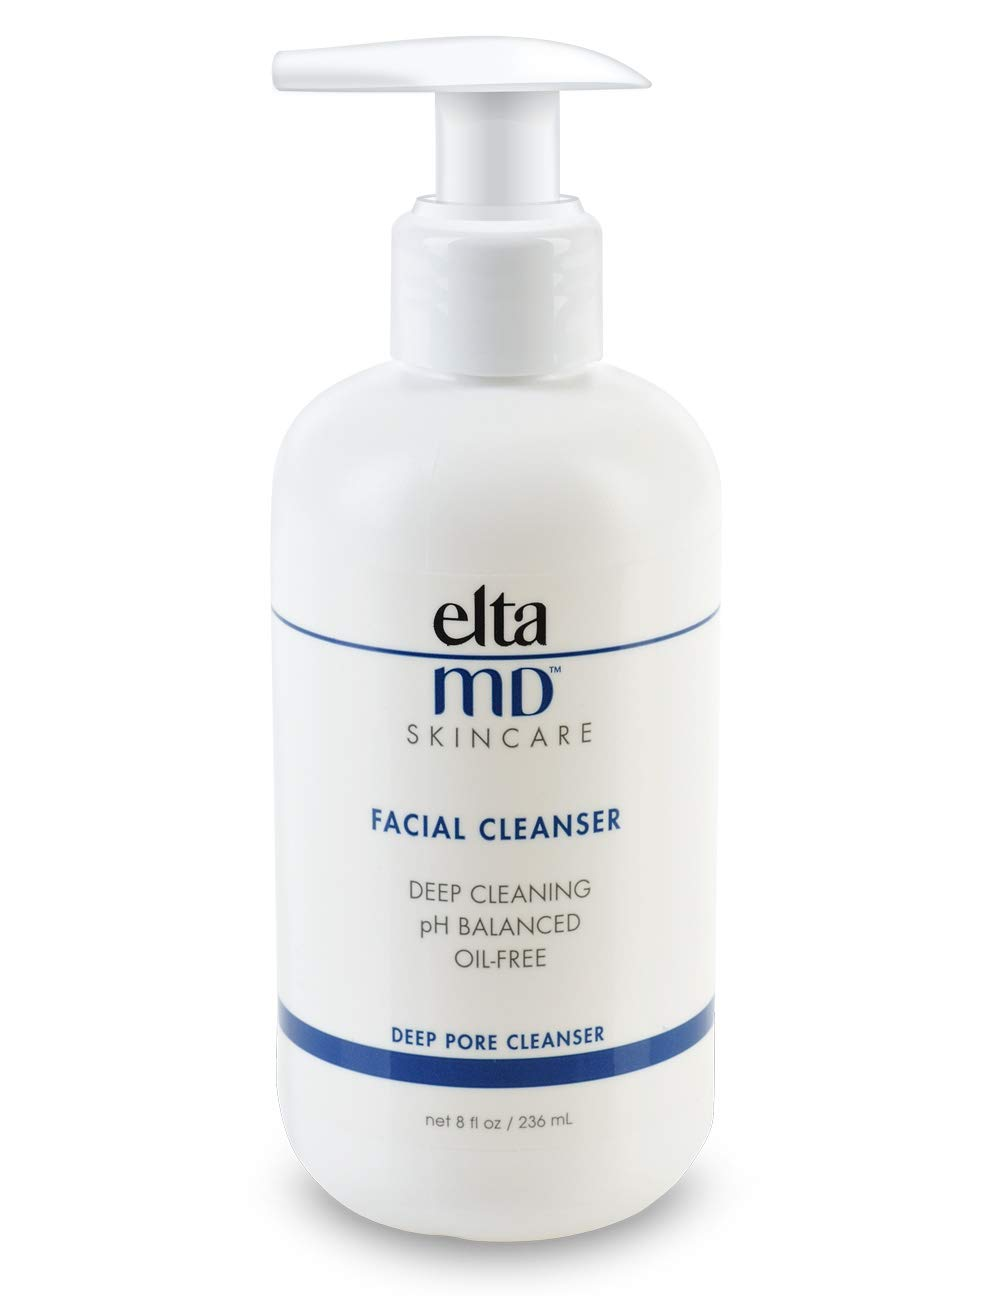 EltaMD Facial Cleanser, Oil-free, Removes Makeup, Dermatologist-Recommended, Face Wash, 8 Fl. Oz